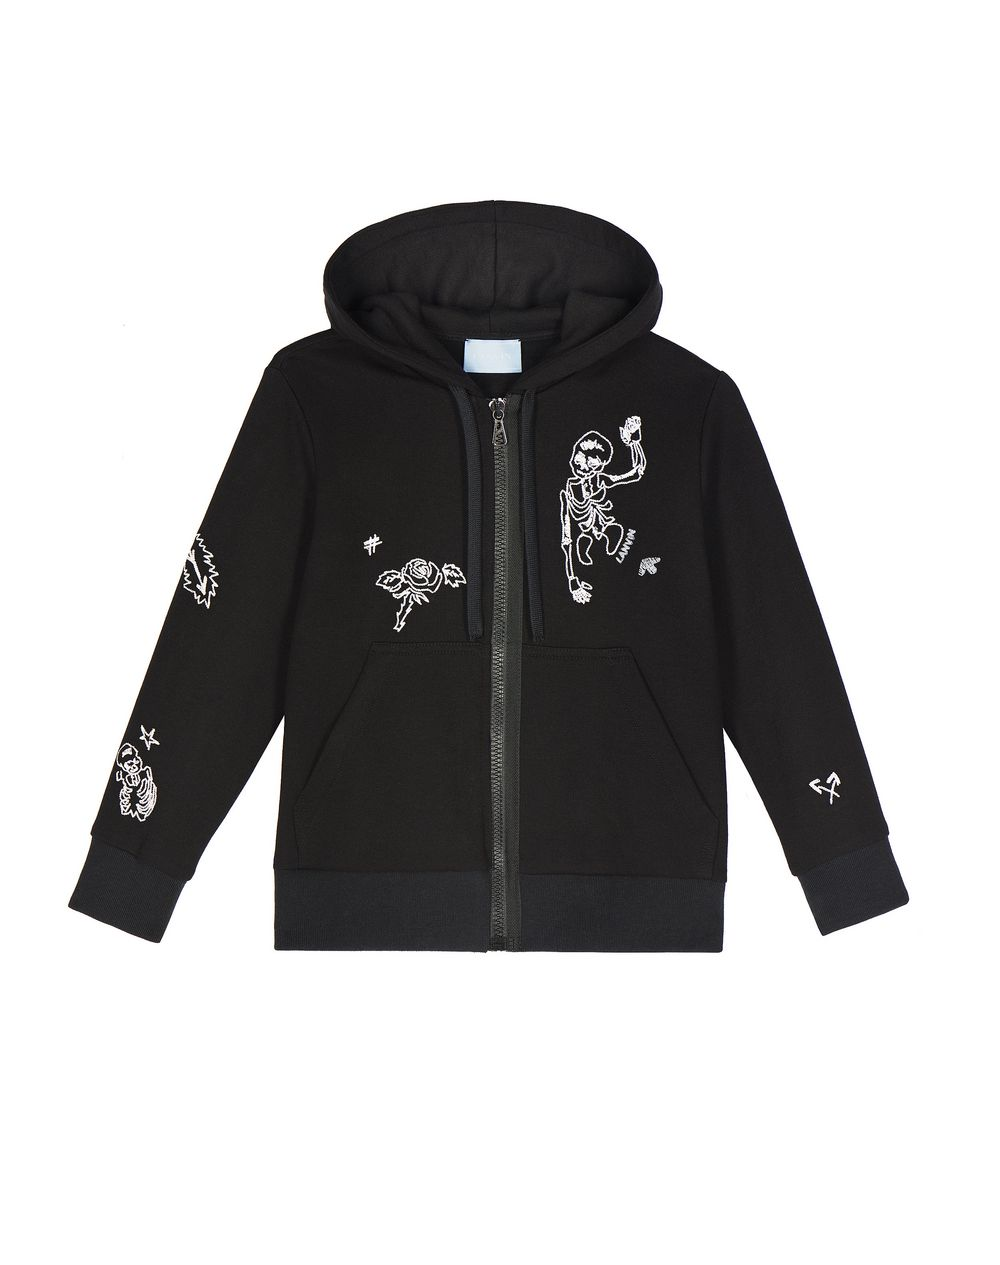 ZIPPED SKELETON SWEATSHIRT - Lanvin